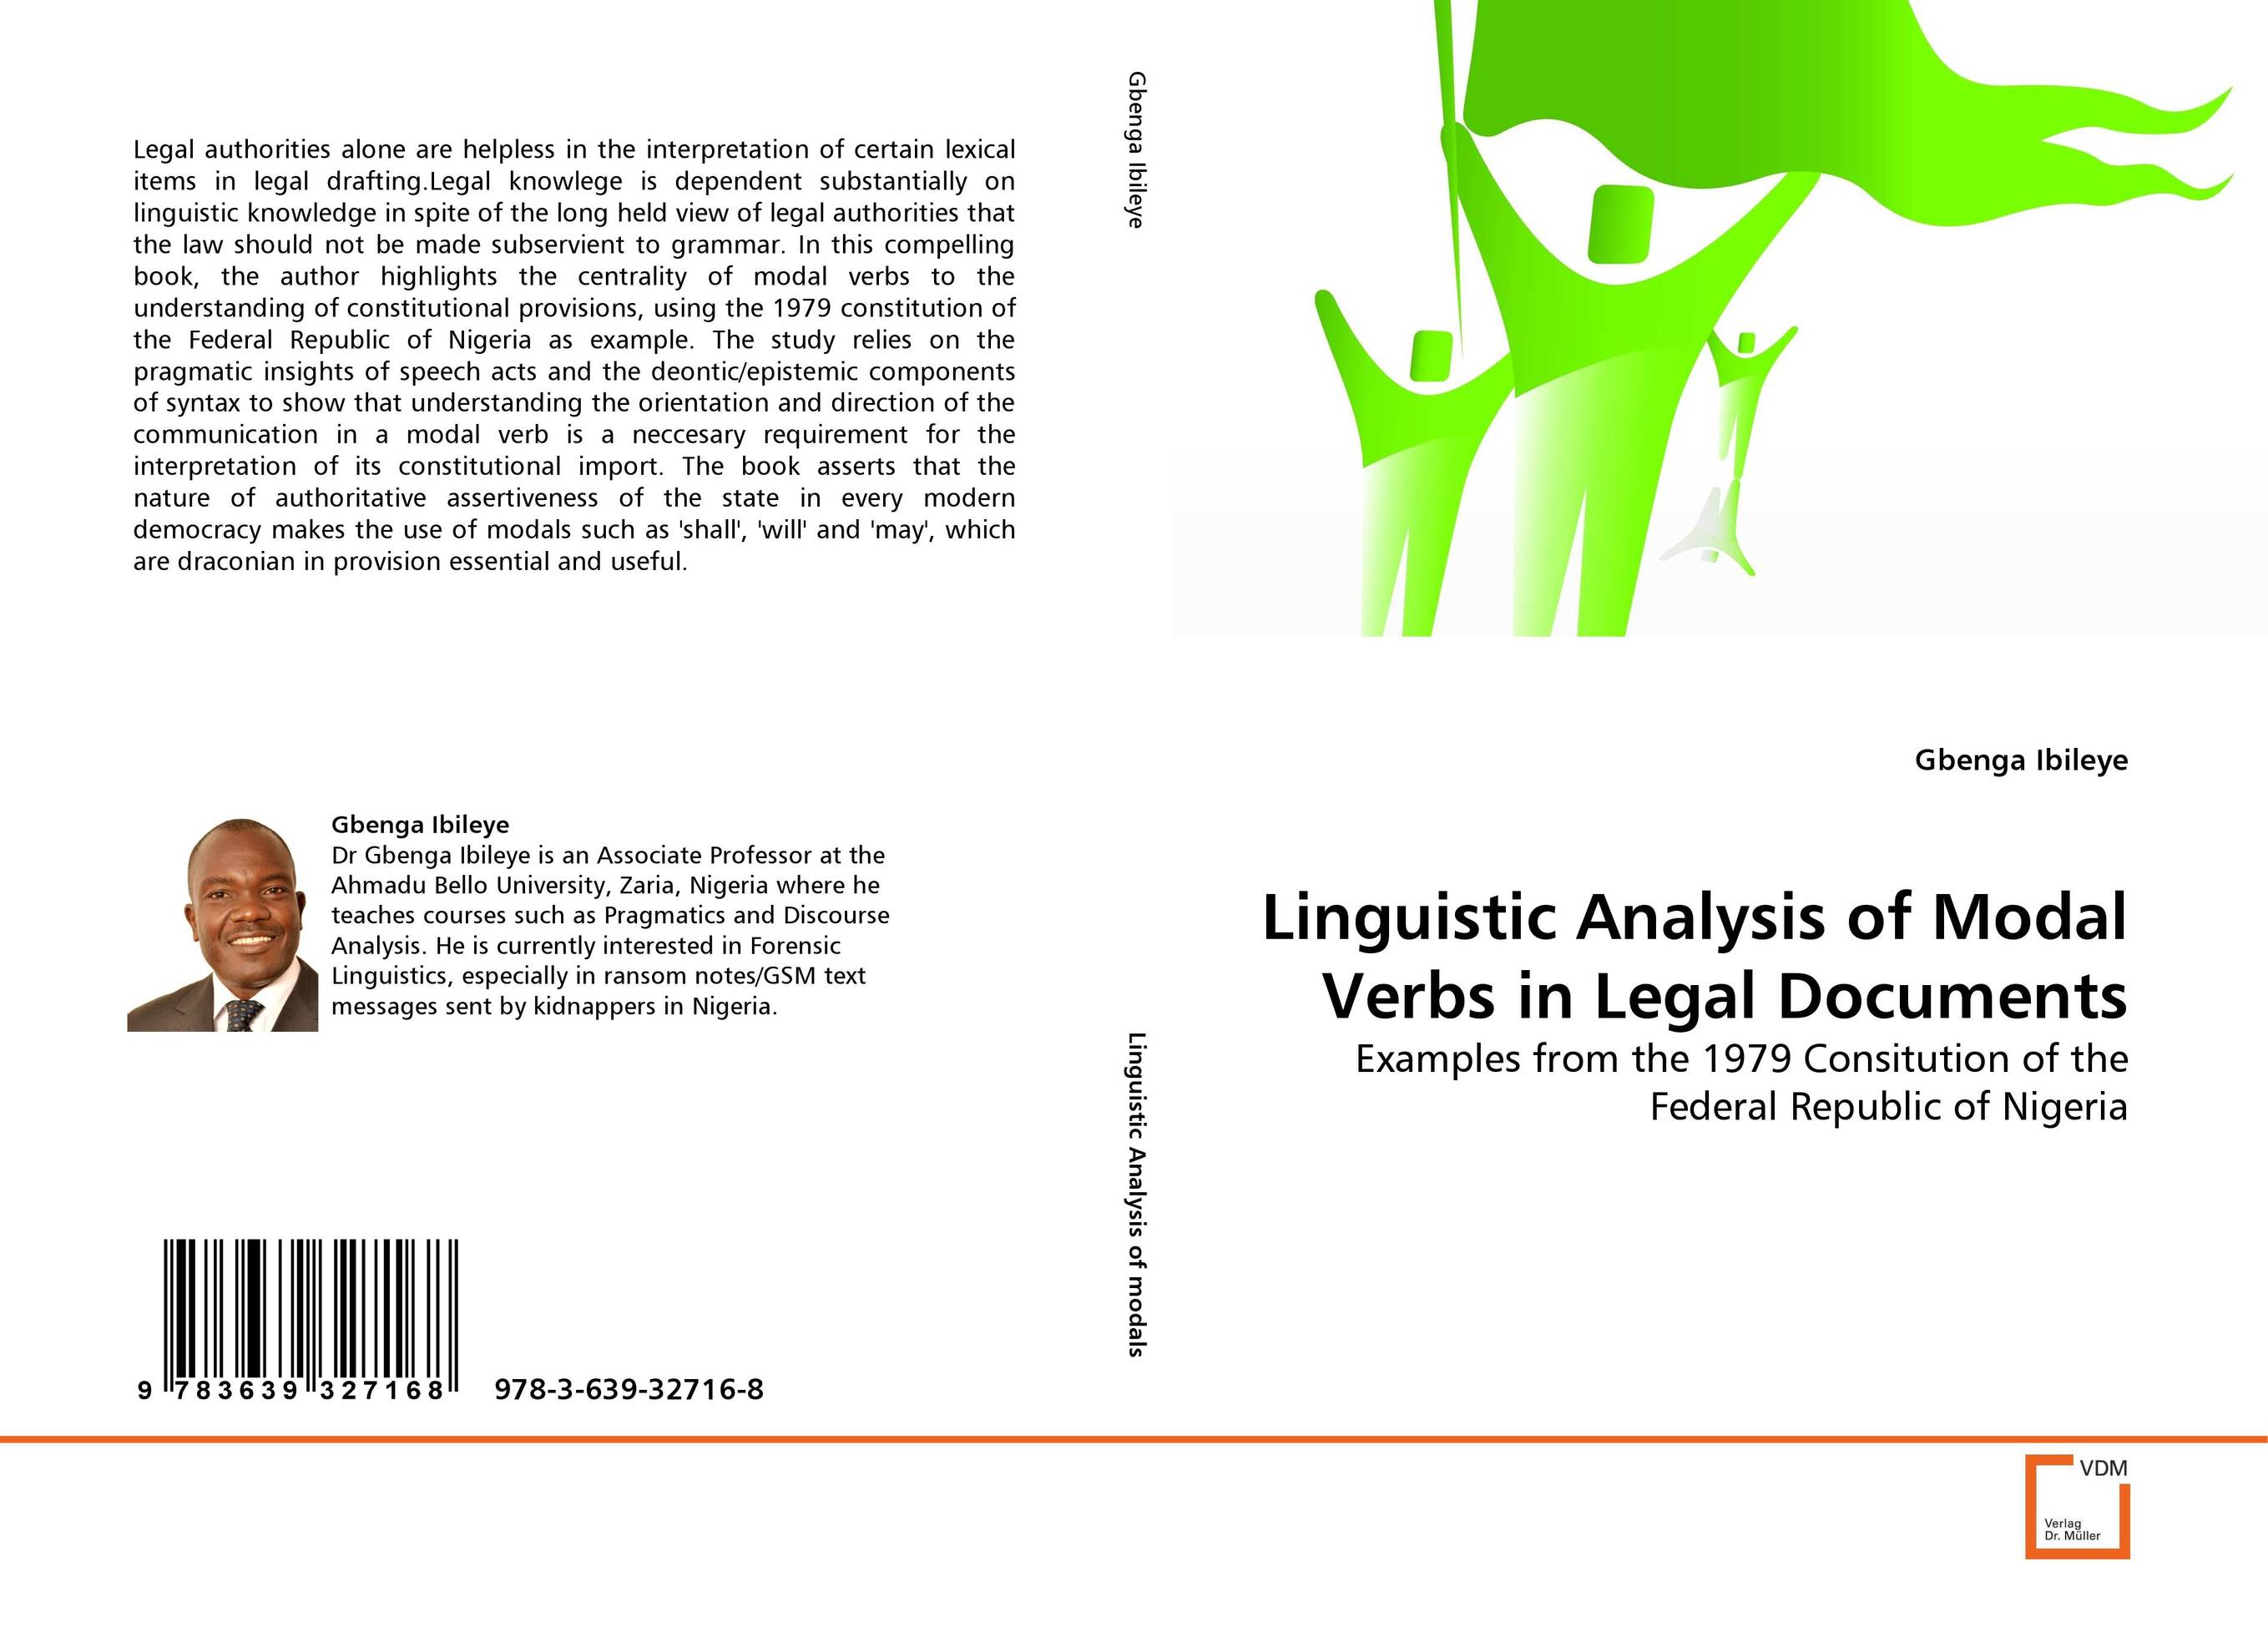 Linguistic Analysis of Modal Verbs in Legal Documents купить